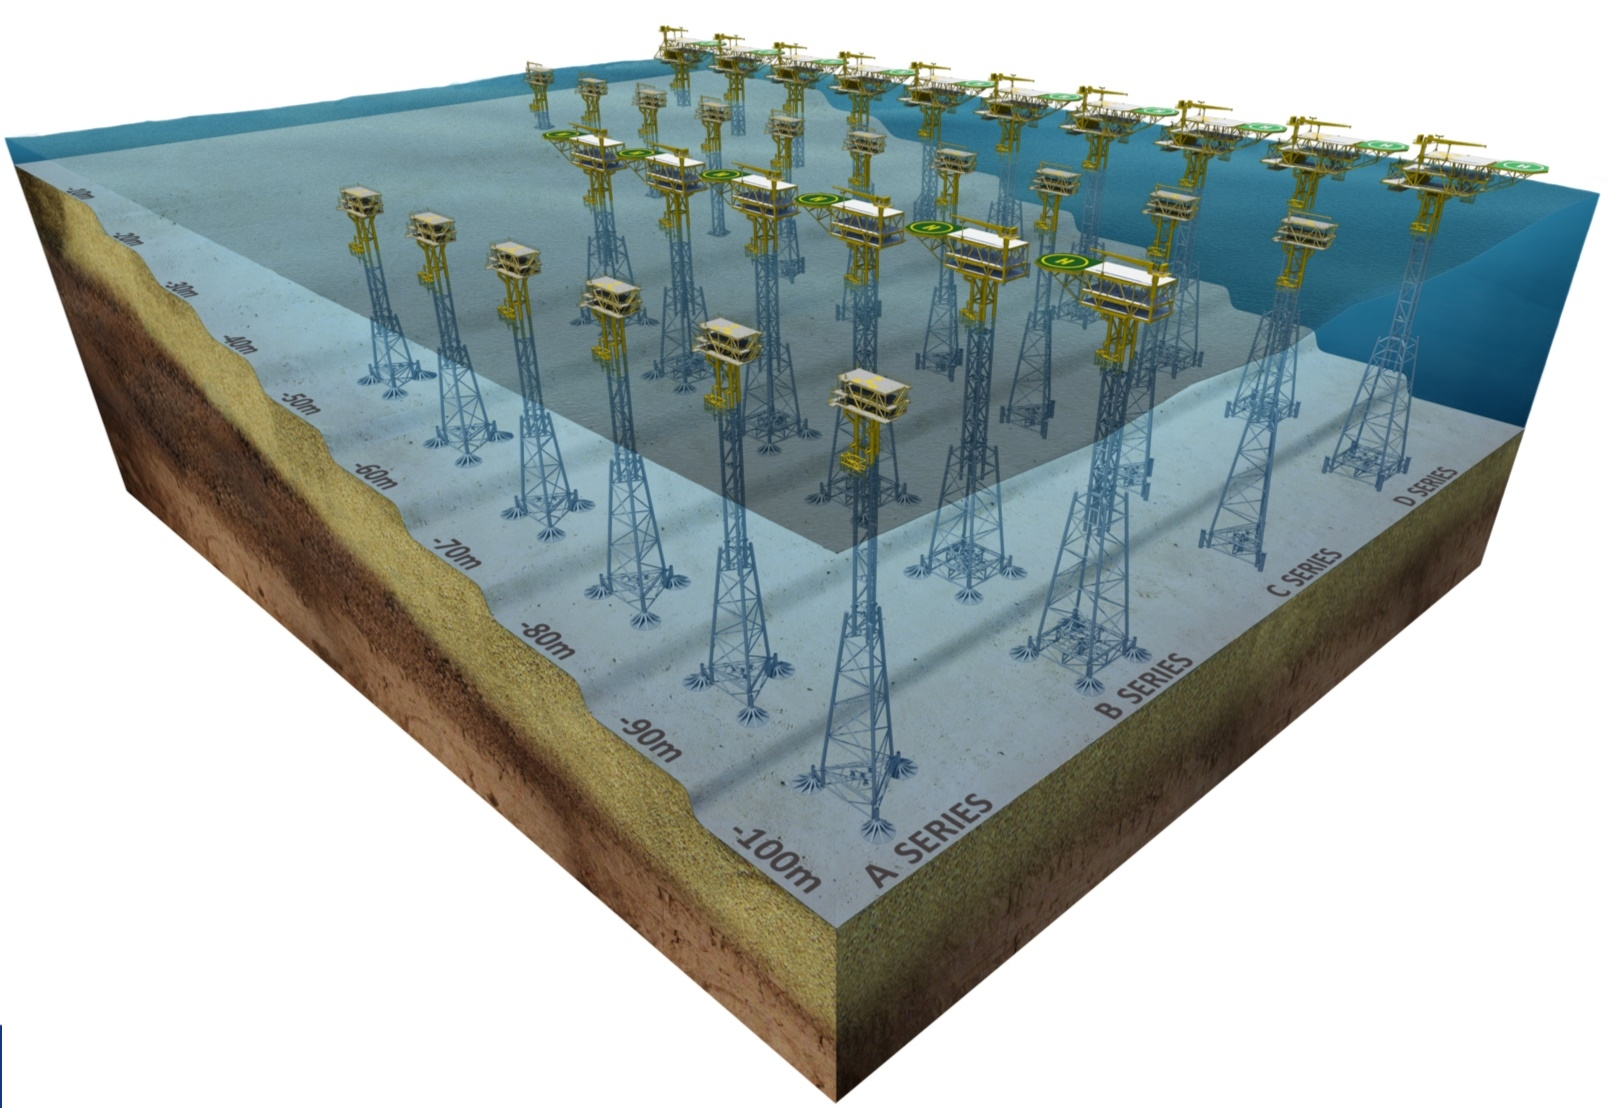 ICON plans for 1st West African wellhead platform